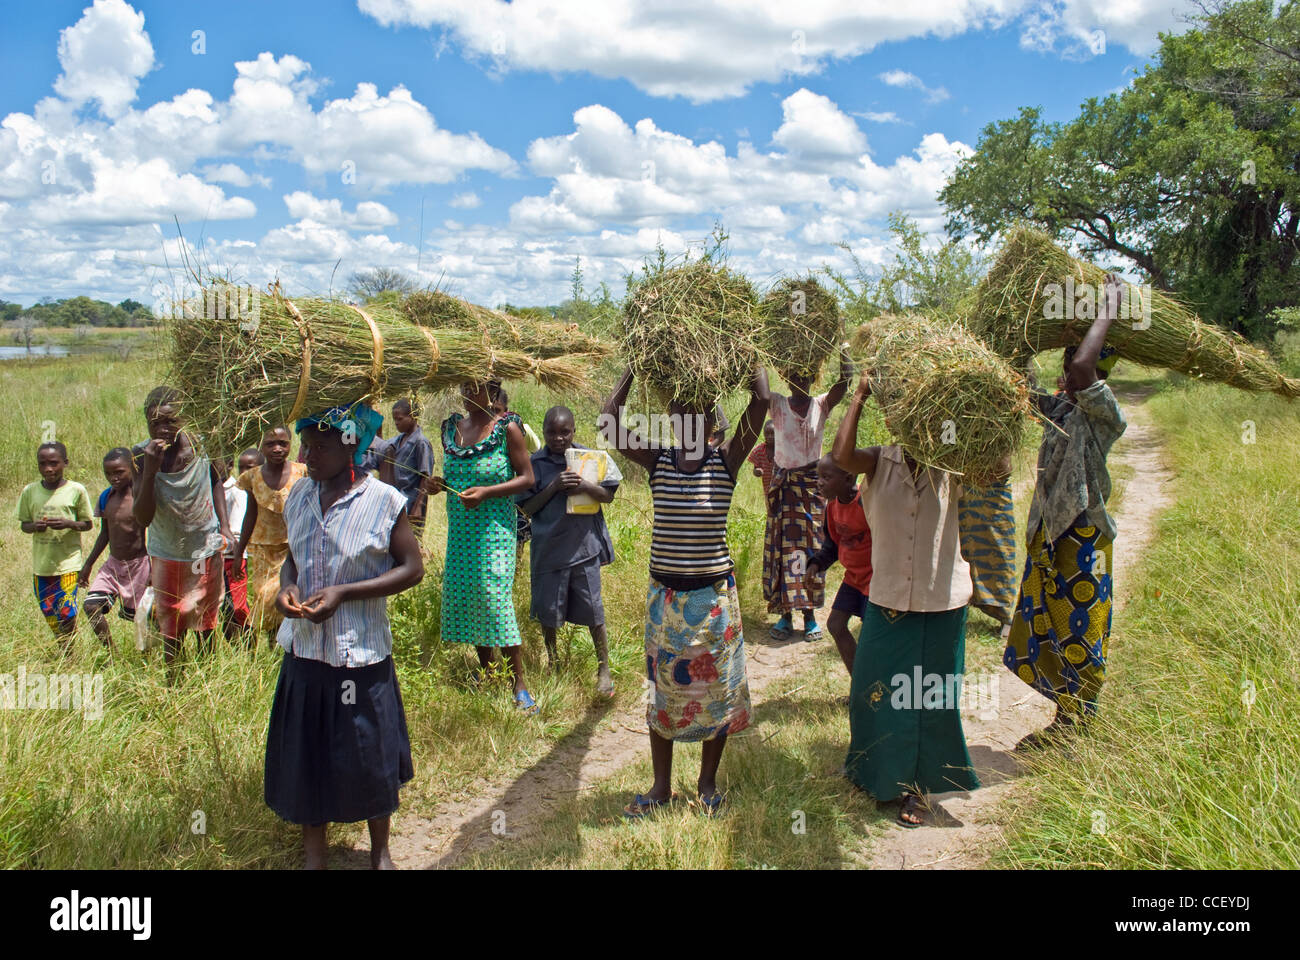 Zambian women returning from the fields carrying bales of cut grass used for thatching. - Stock Image